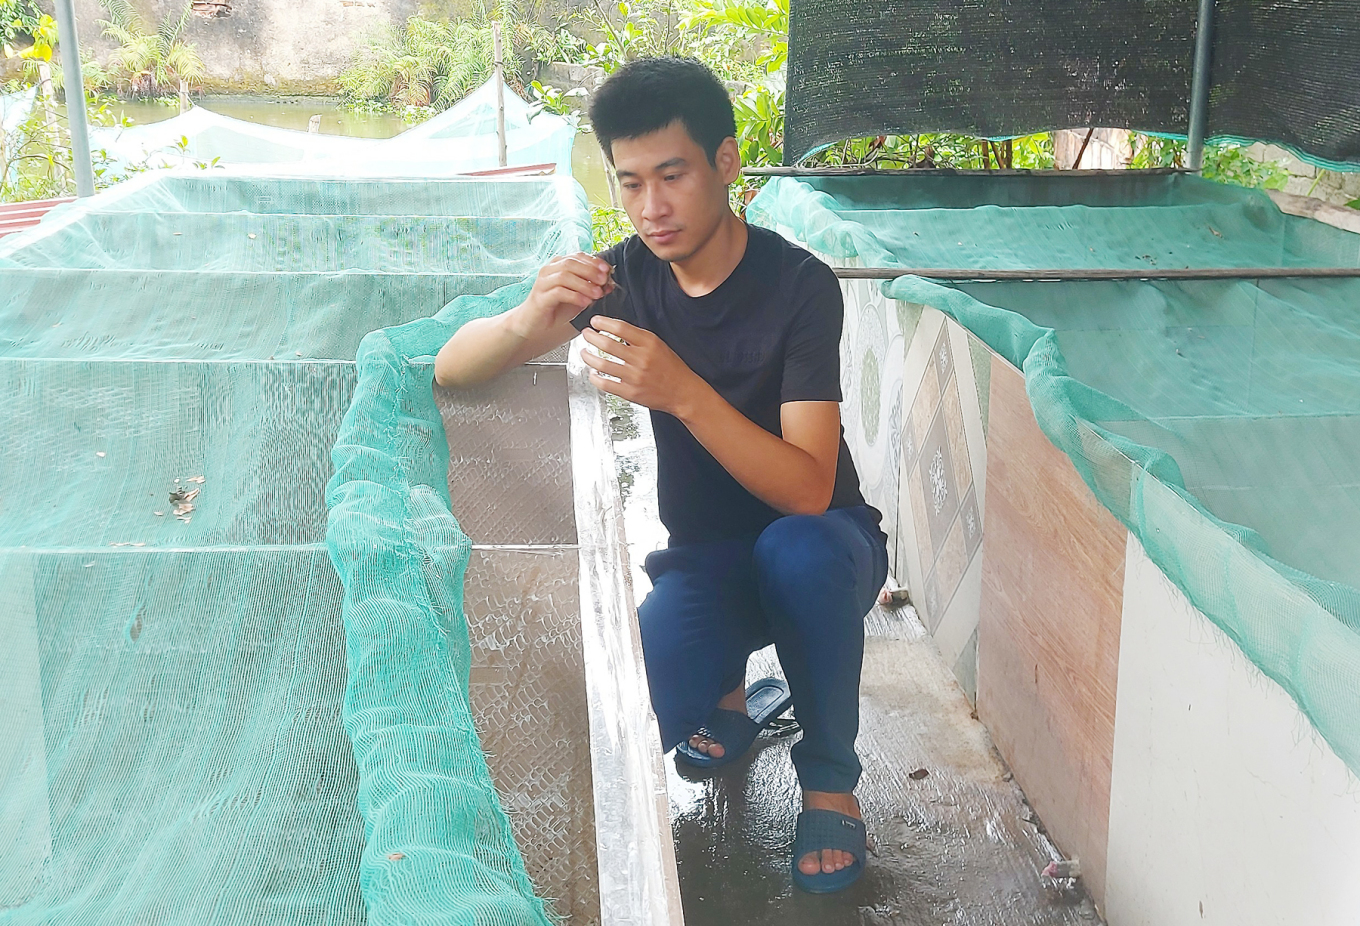 Le Van Thiet is checking for any unusual on his ca cuong that he raised for breeding, July 2021. Photo courtesy of Thiet